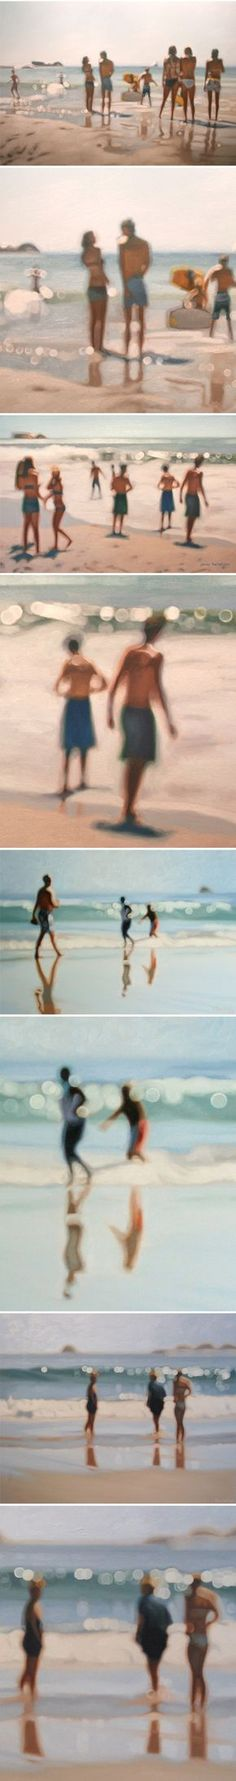 philip barlow. oil paintings. wow.